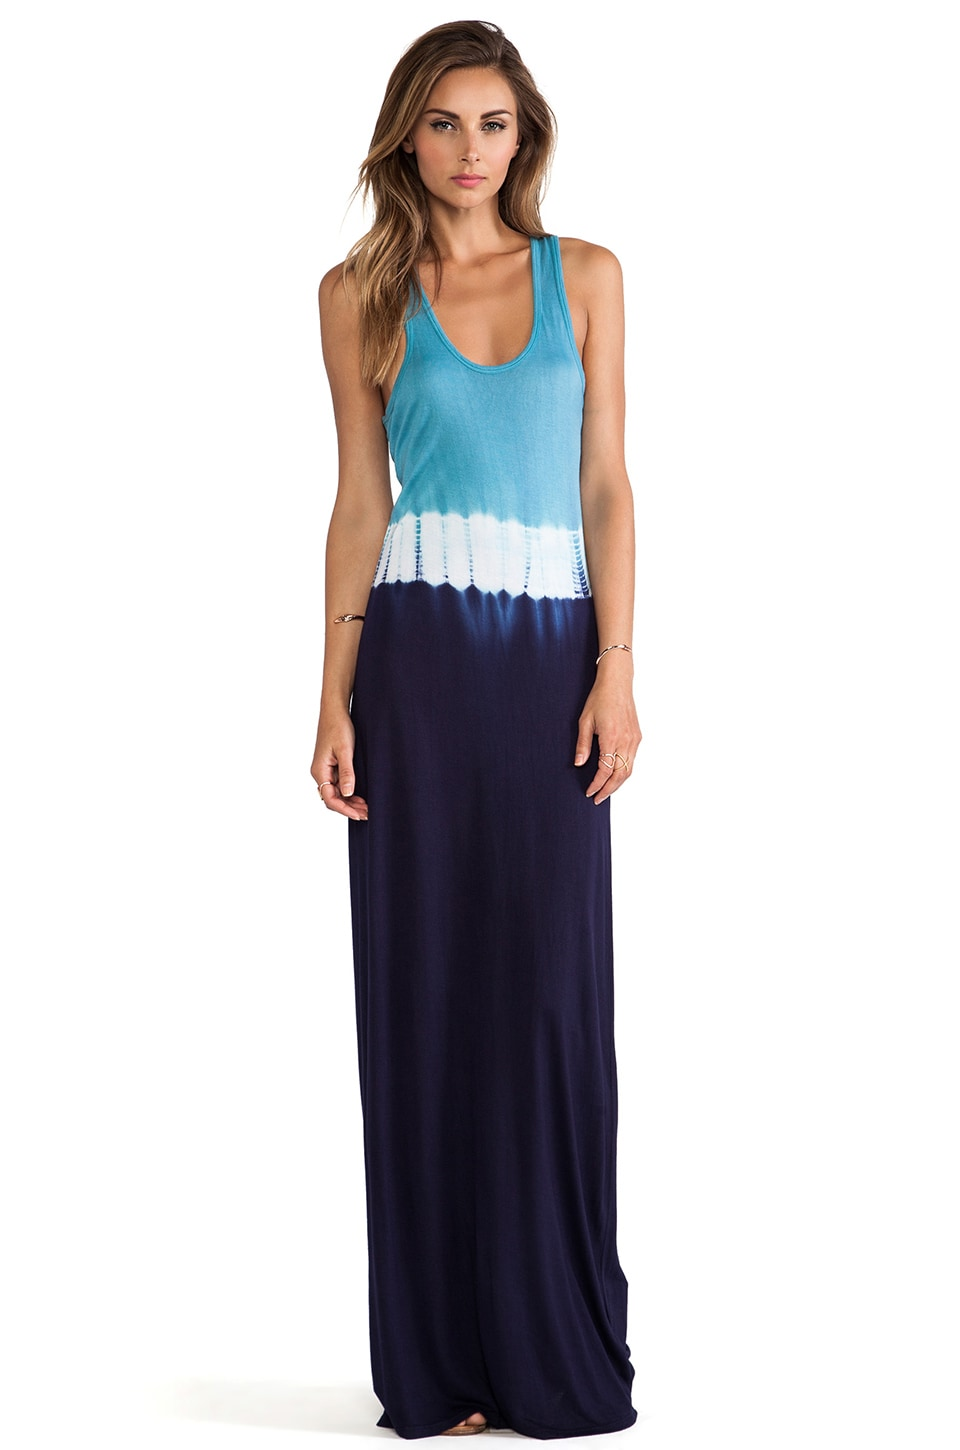 Trina Turk Tie Dye Jersey Carly Maxi Dress in Blue Jewel/Black Plum